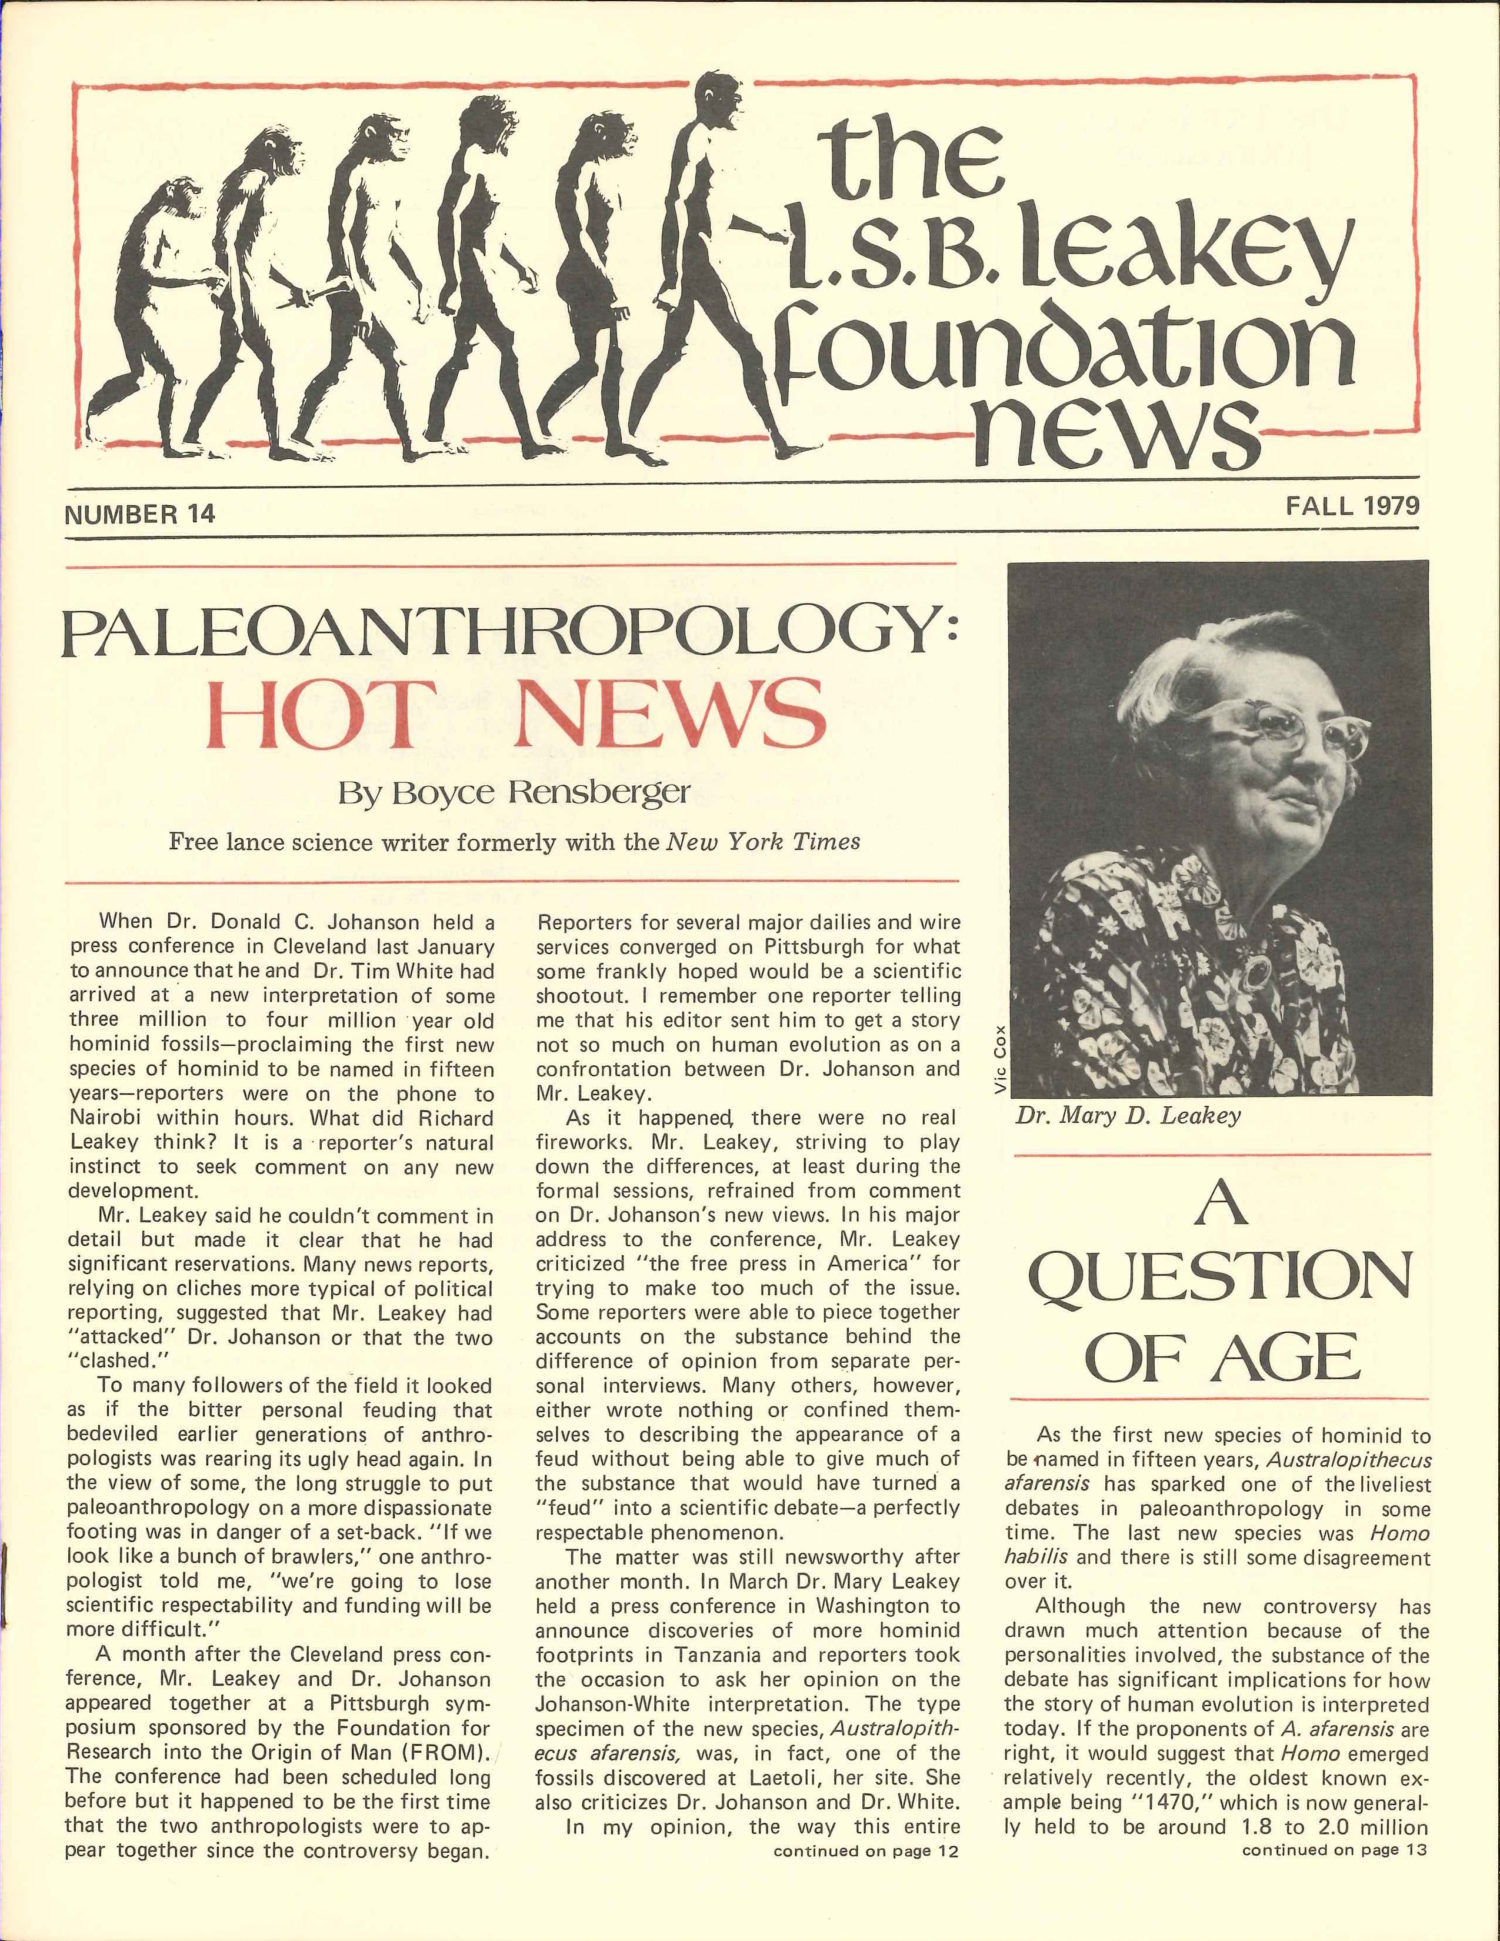 The-L.S.B-Leakey-Foundation-News_14_Fall_1979_Page_01-2.jpg